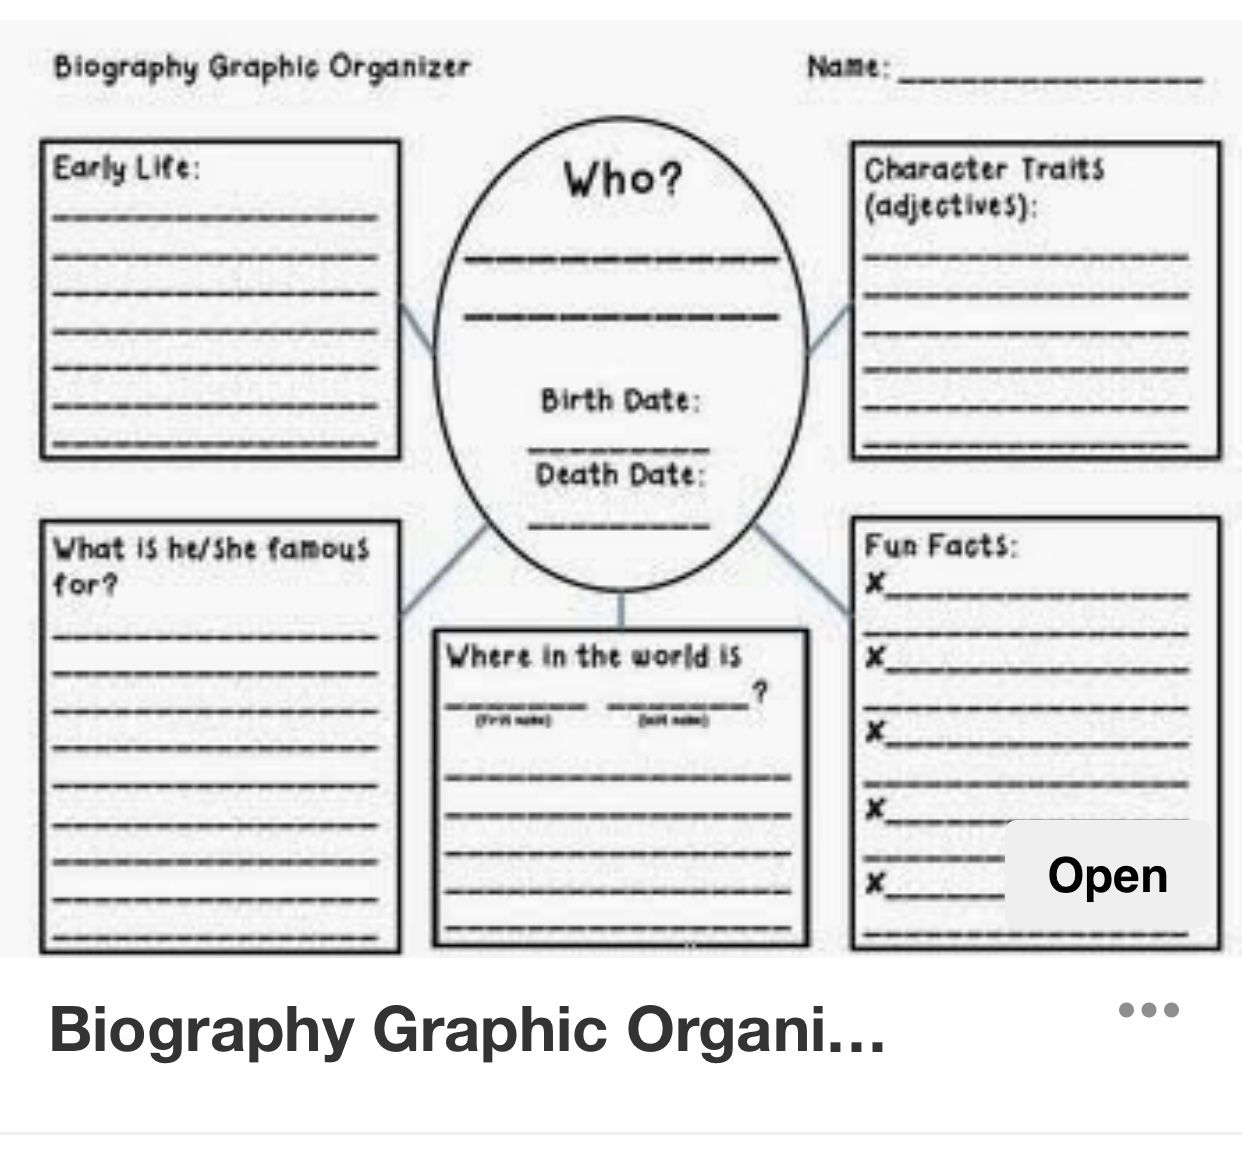 medium resolution of Comprehension Worksheets Biographies   Printable Worksheets and Activities  for Teachers